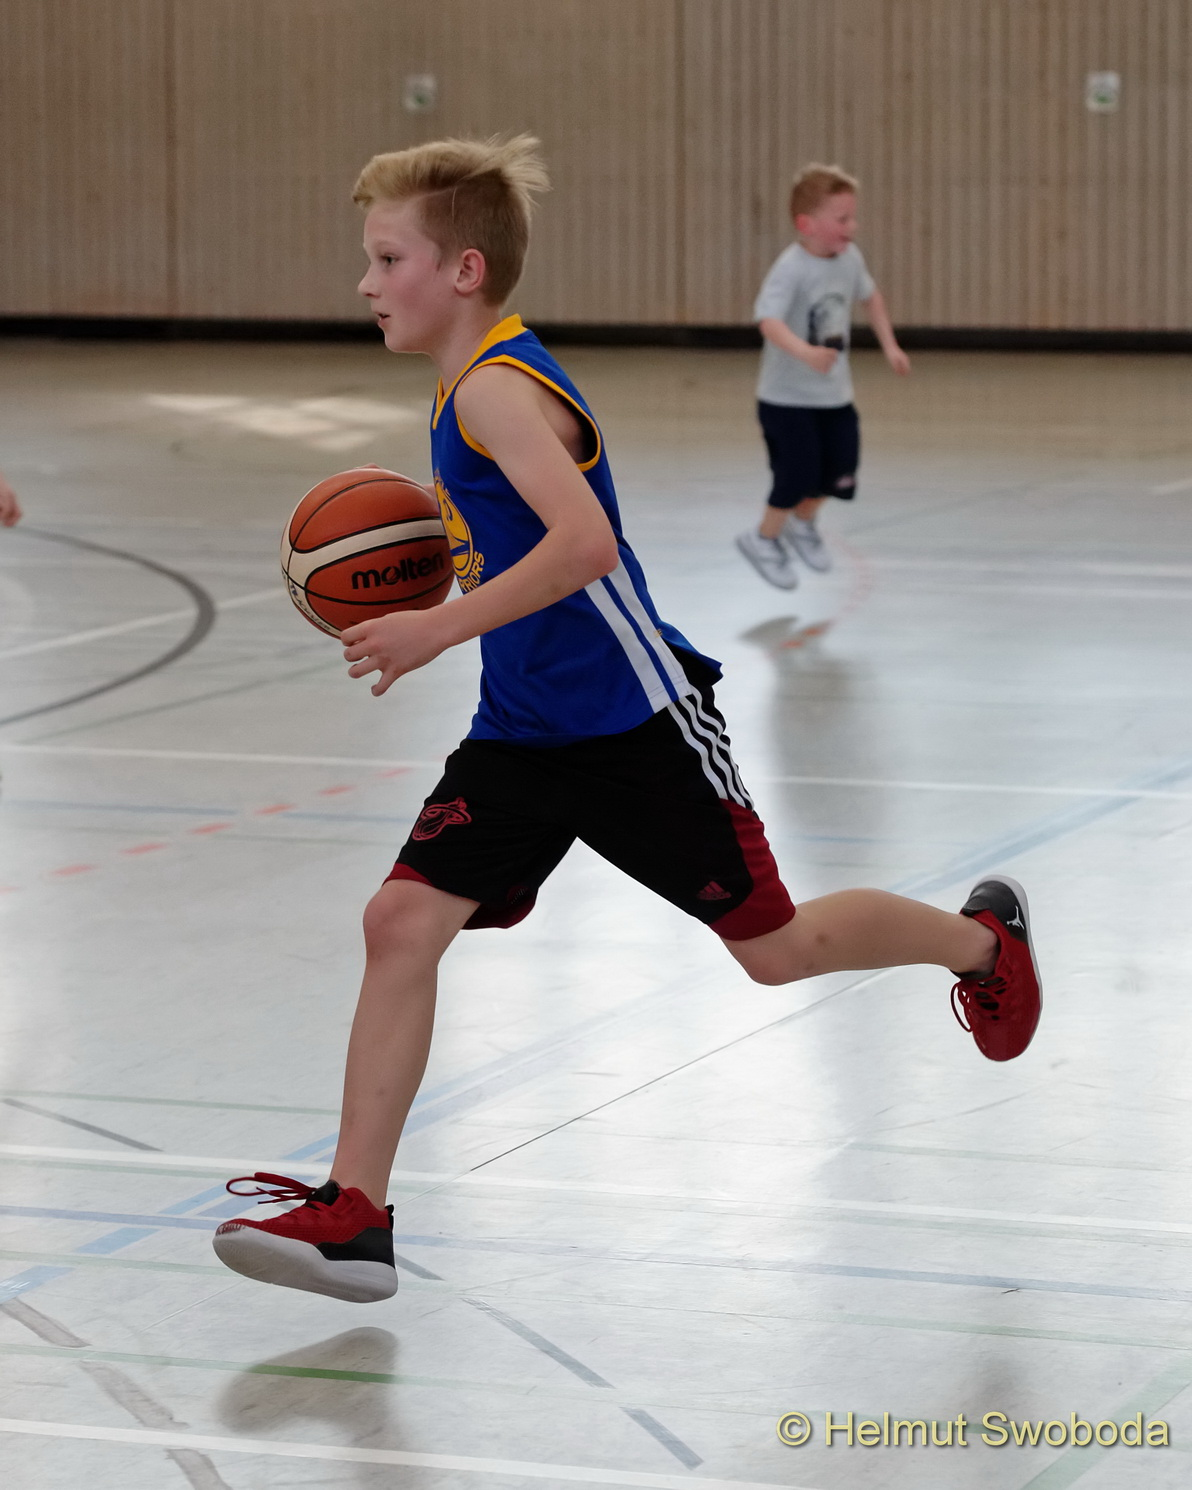 d170402-165048700-100-basketball_weilheim-mixed-turnier_33813683855_o